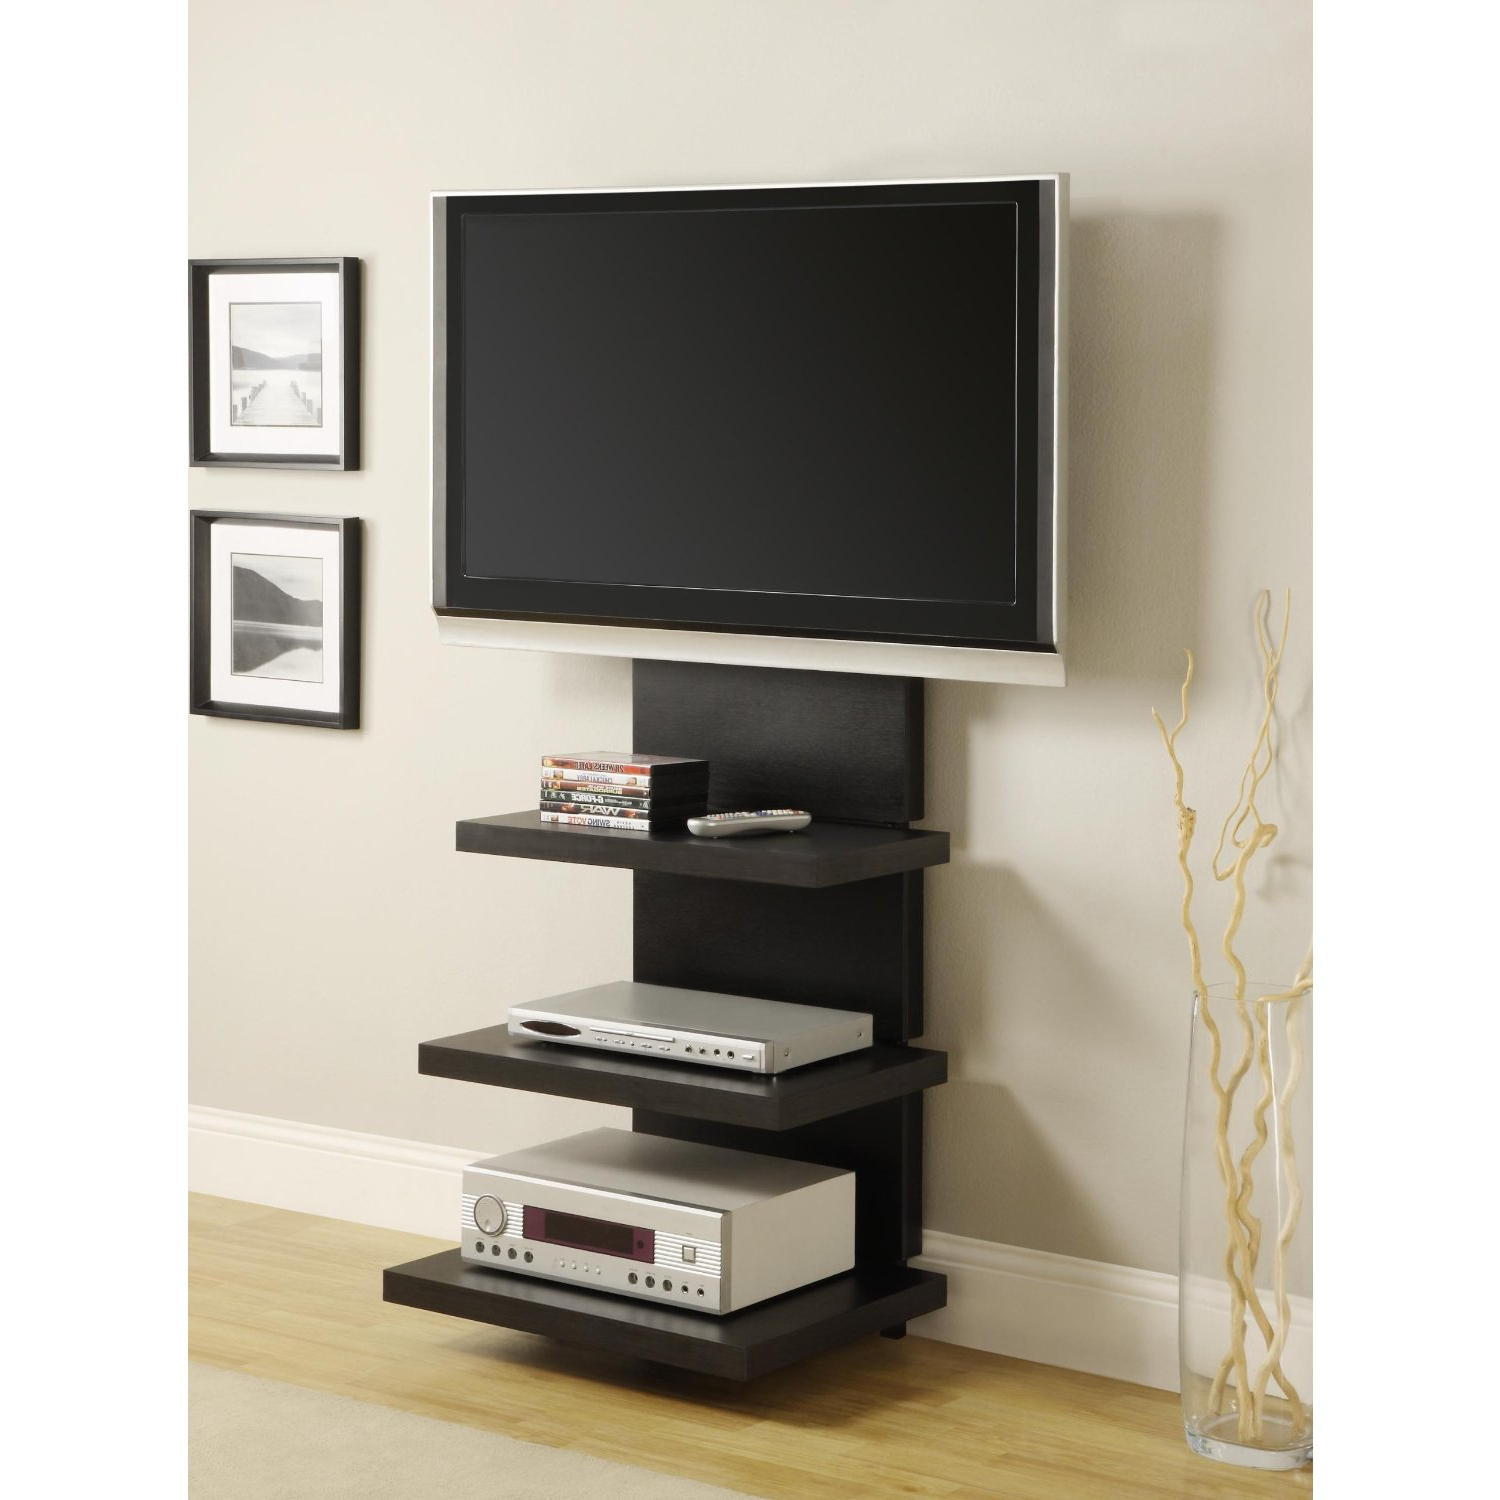 Latest Tv Stands For Small Spaces Minimalist Tall Corner – Furnish Ideas With Regard To Small Tv Stands (Gallery 9 of 20)